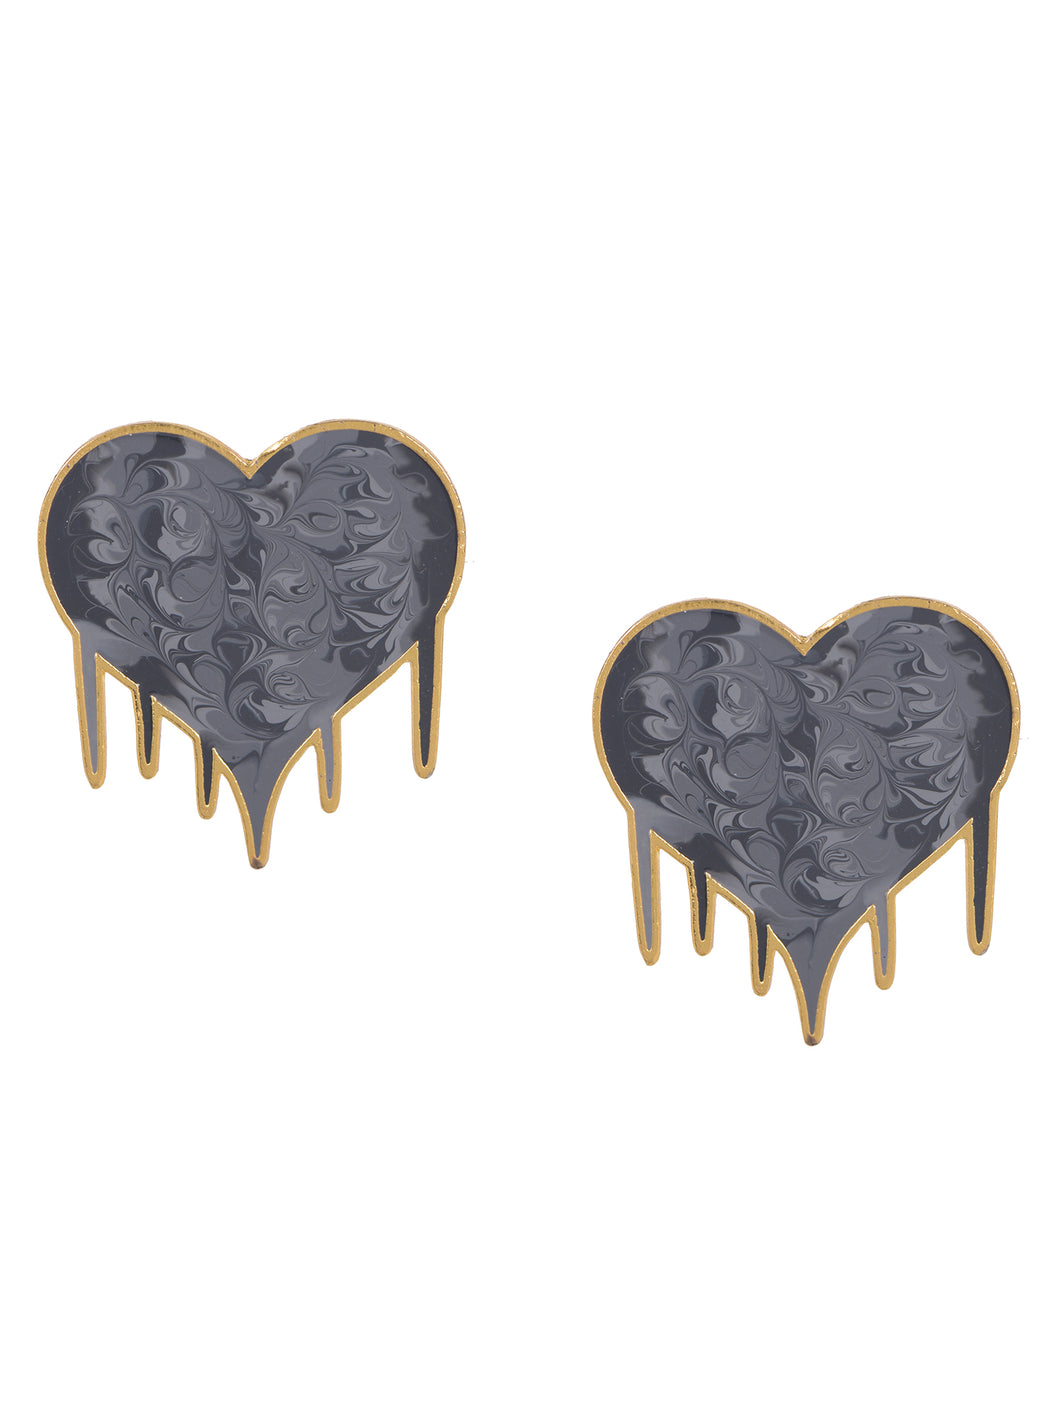 Hearts full of love earrings- grey